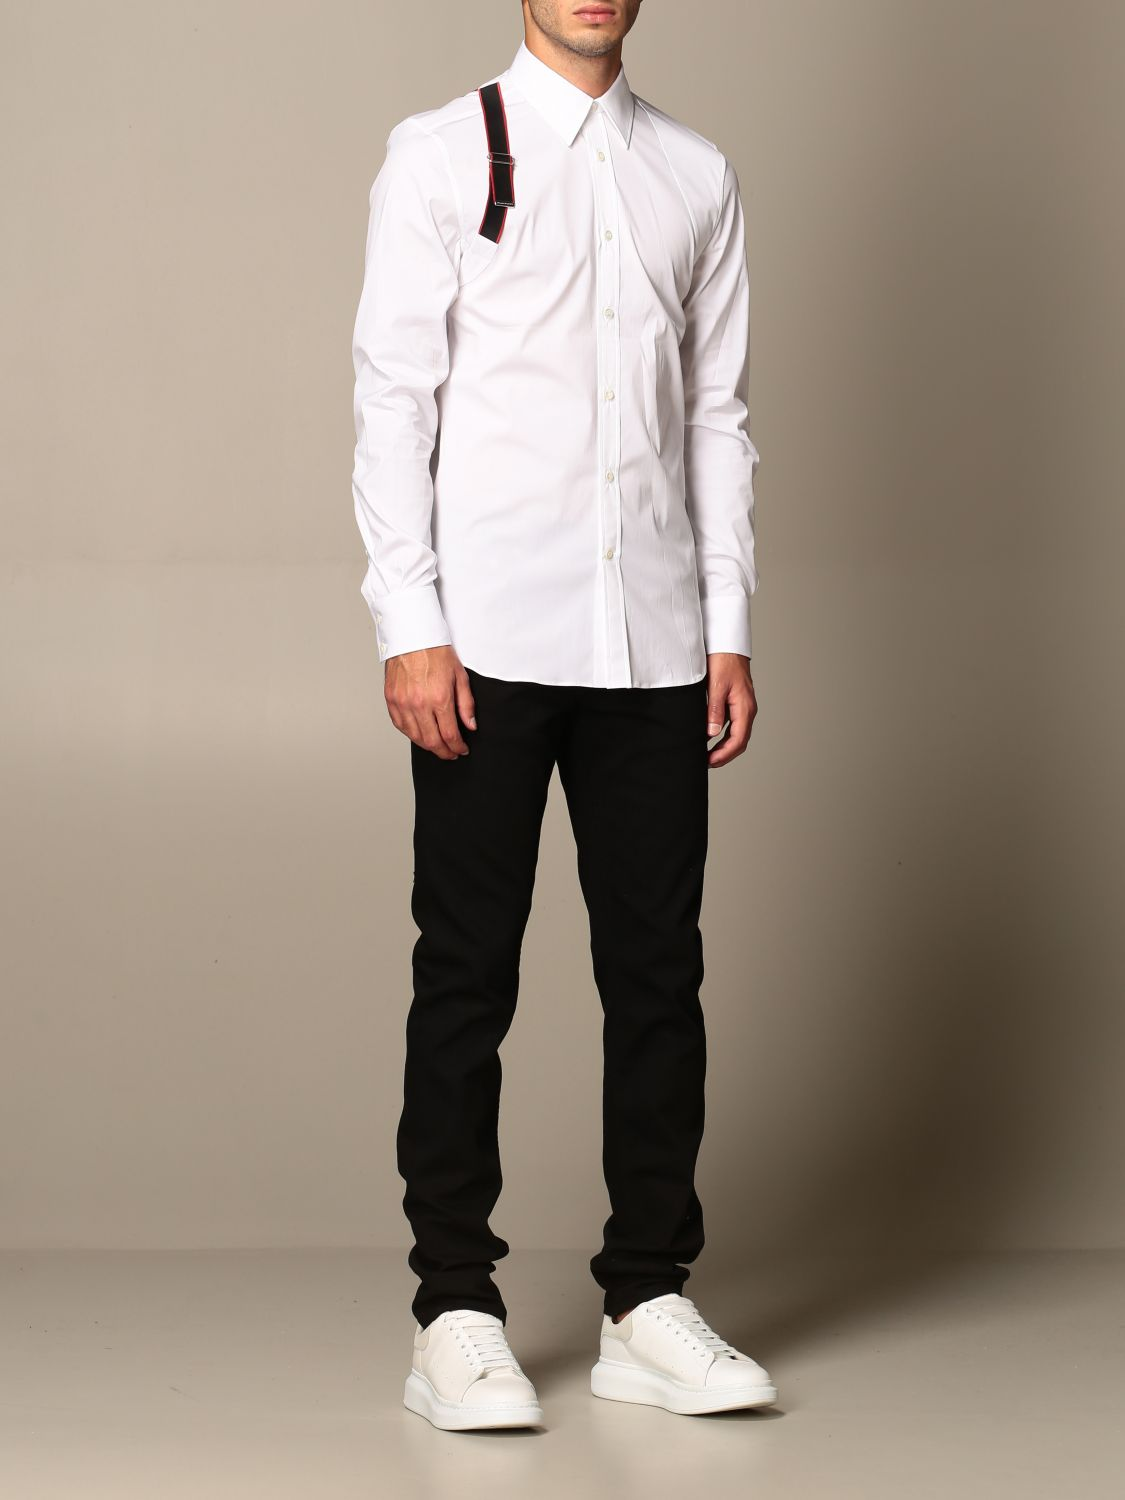 Shirt Alexander Mcqueen: Alexander McQueen shirt with buckle white 2